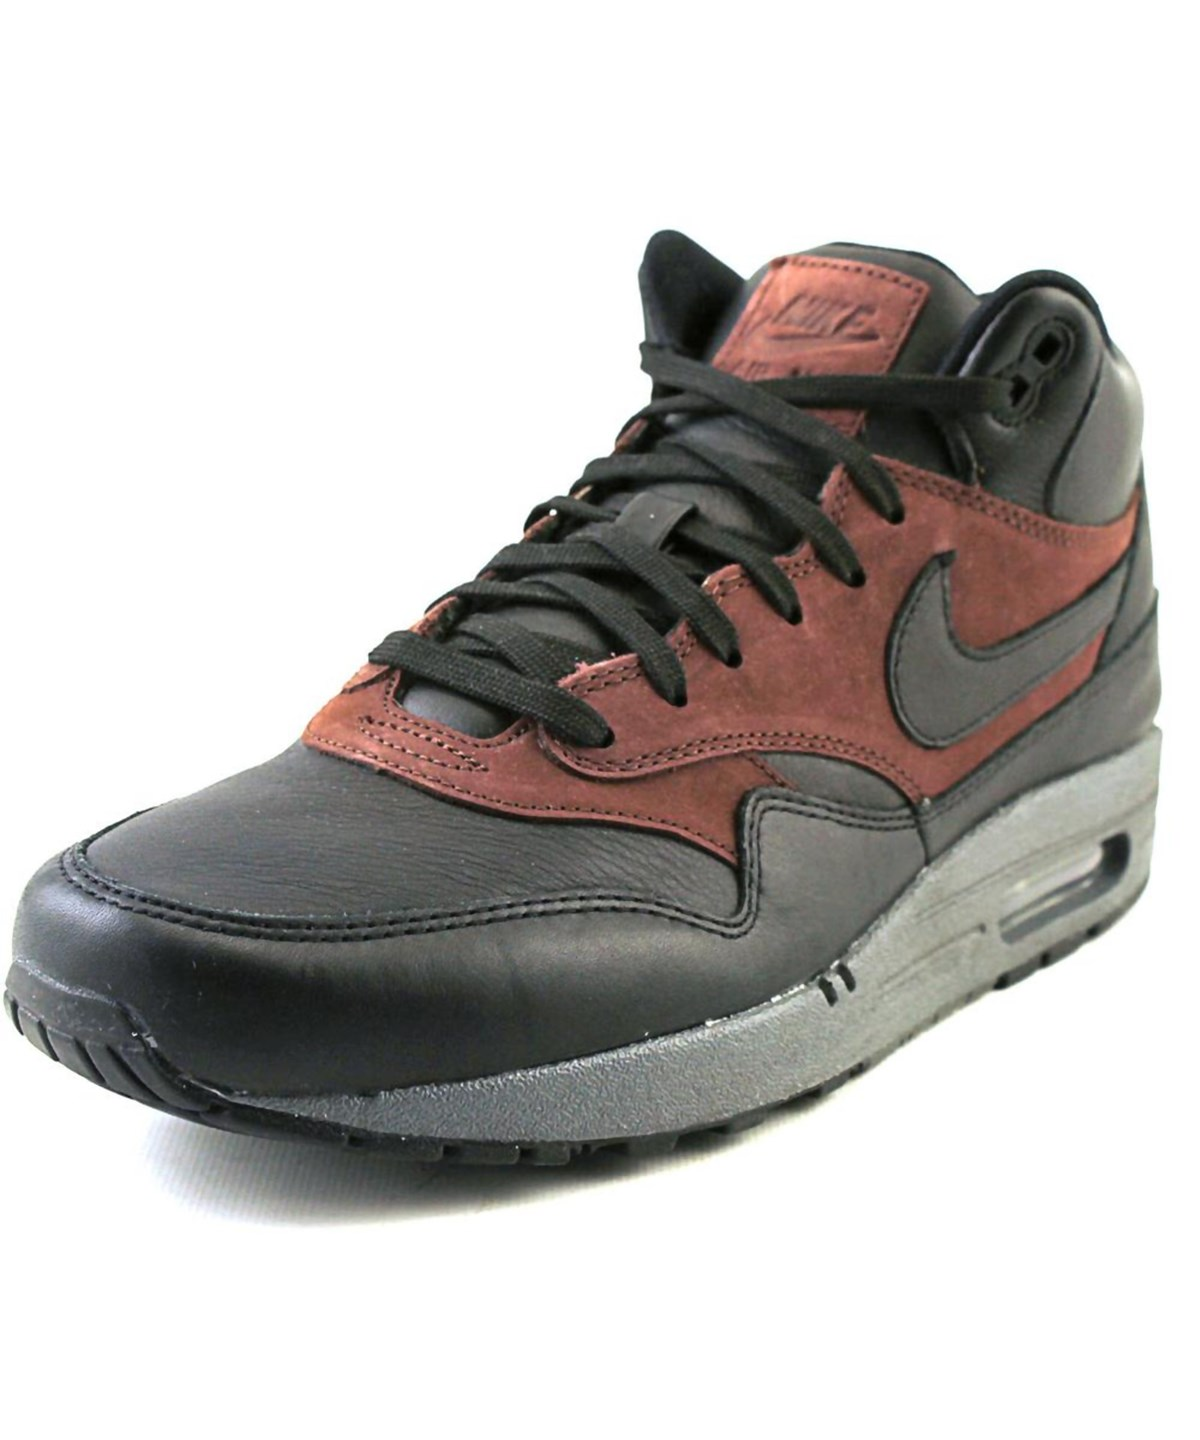 Nike Air Max 1 Mid Deluxe Qs Men Round Toe Synthetic Black Sneakers'